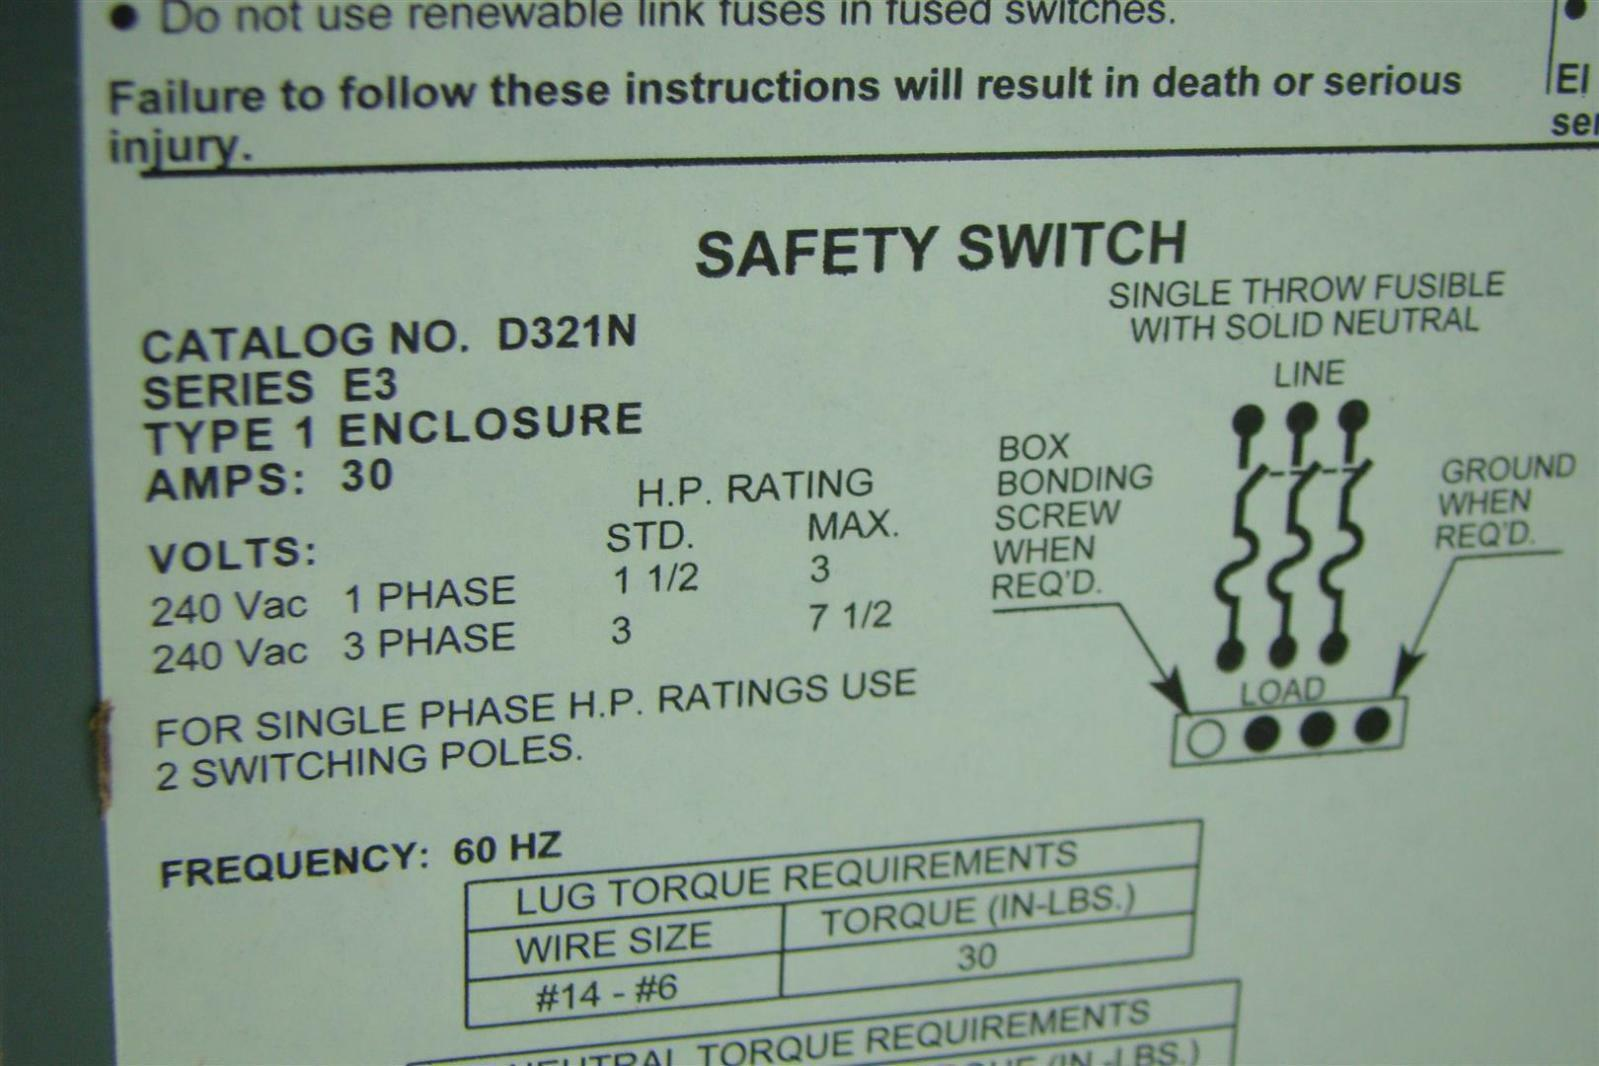 Colorful 14 3 Wire Amp Rating Vignette - Wiring Diagram Ideas ...